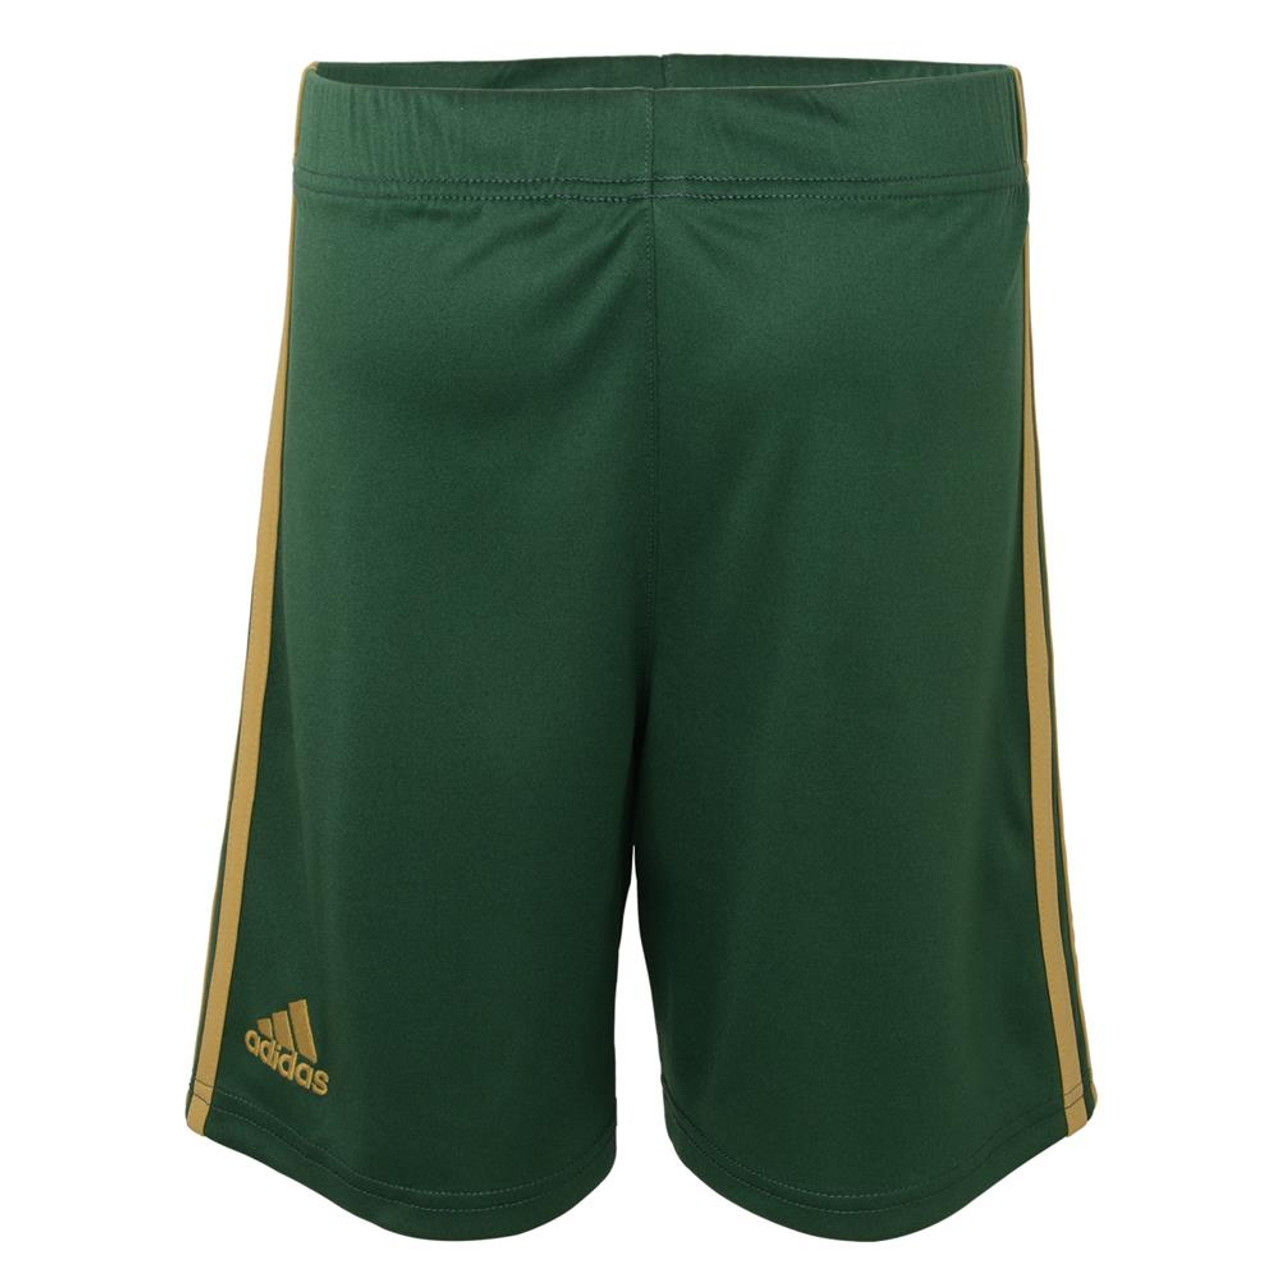 Youth Portland Timbers Shorts Adidas Primary Gym Shorts